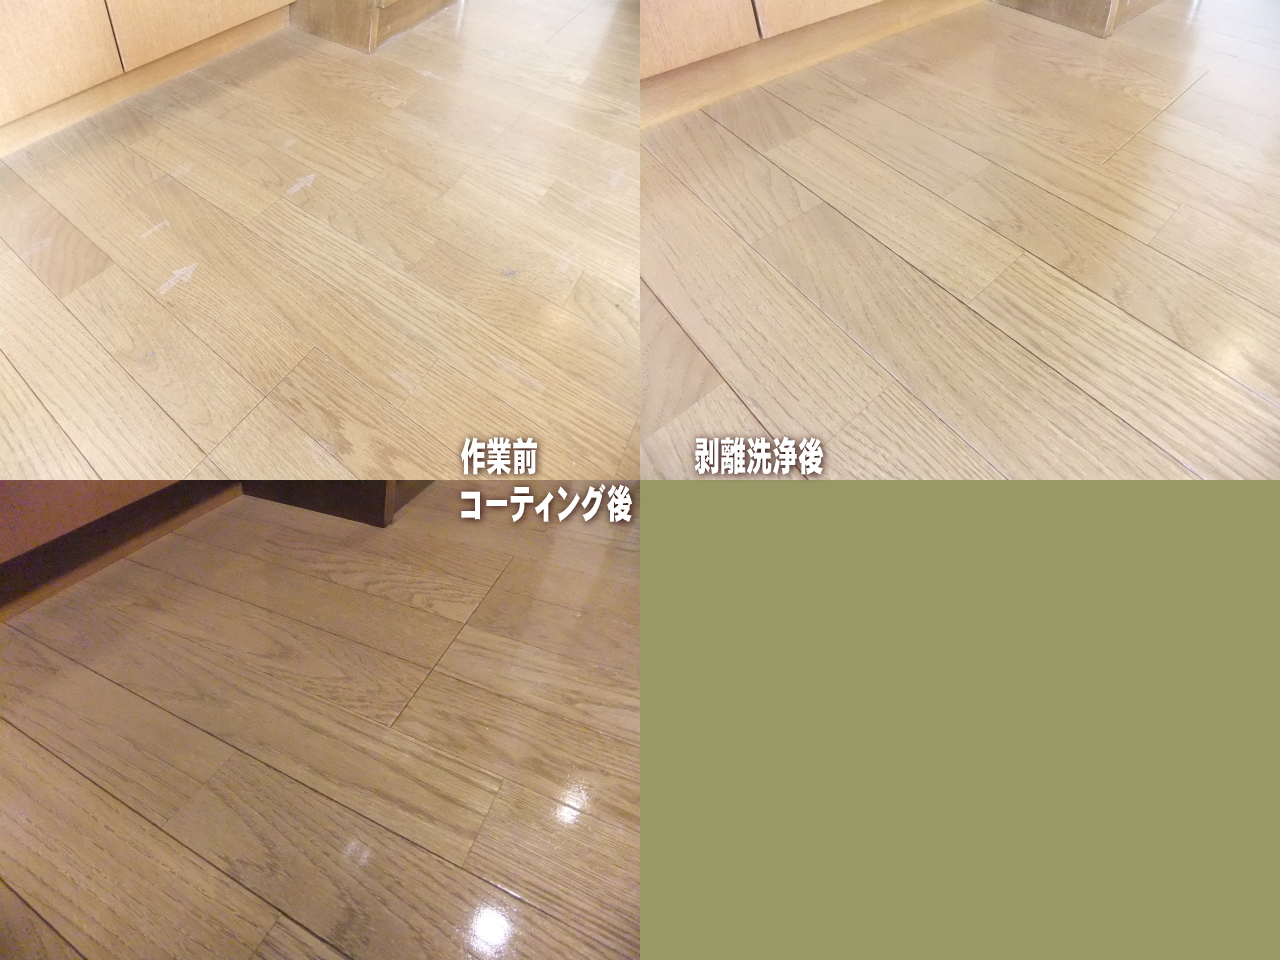 http://ajras.net/images/110831-coating2.jpg